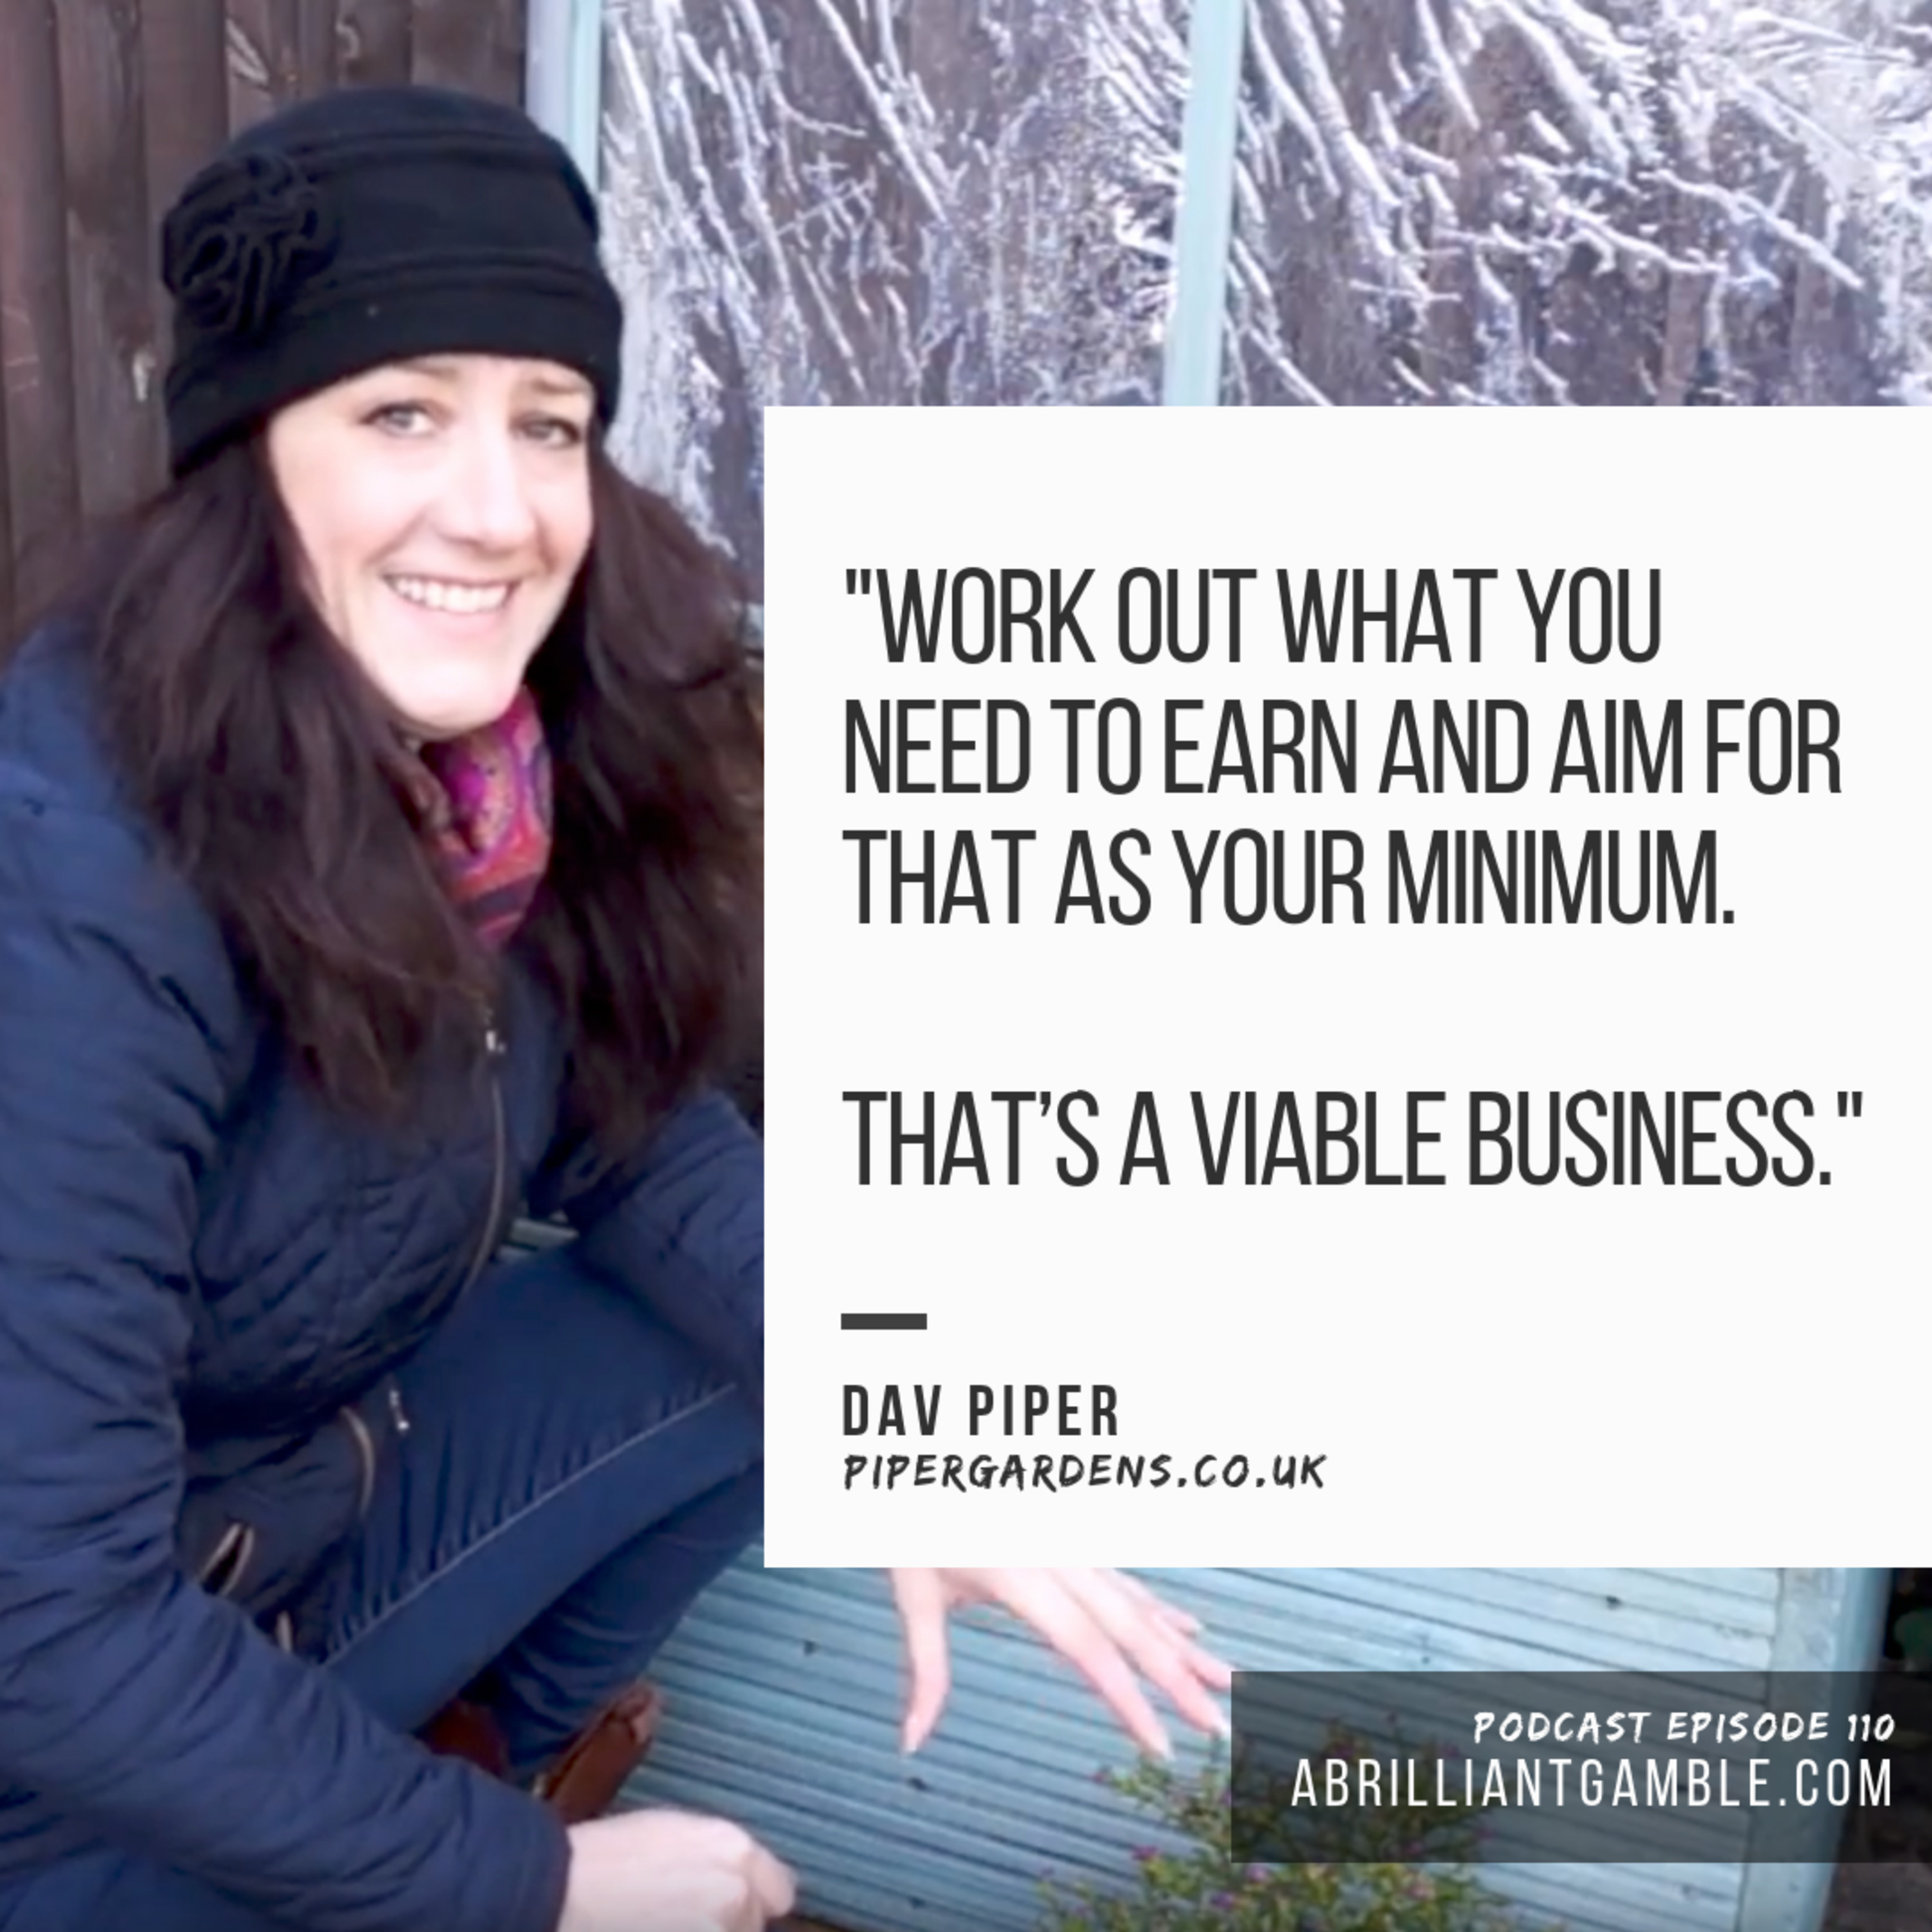 110 Looking For Your Passion, with Dav Piper